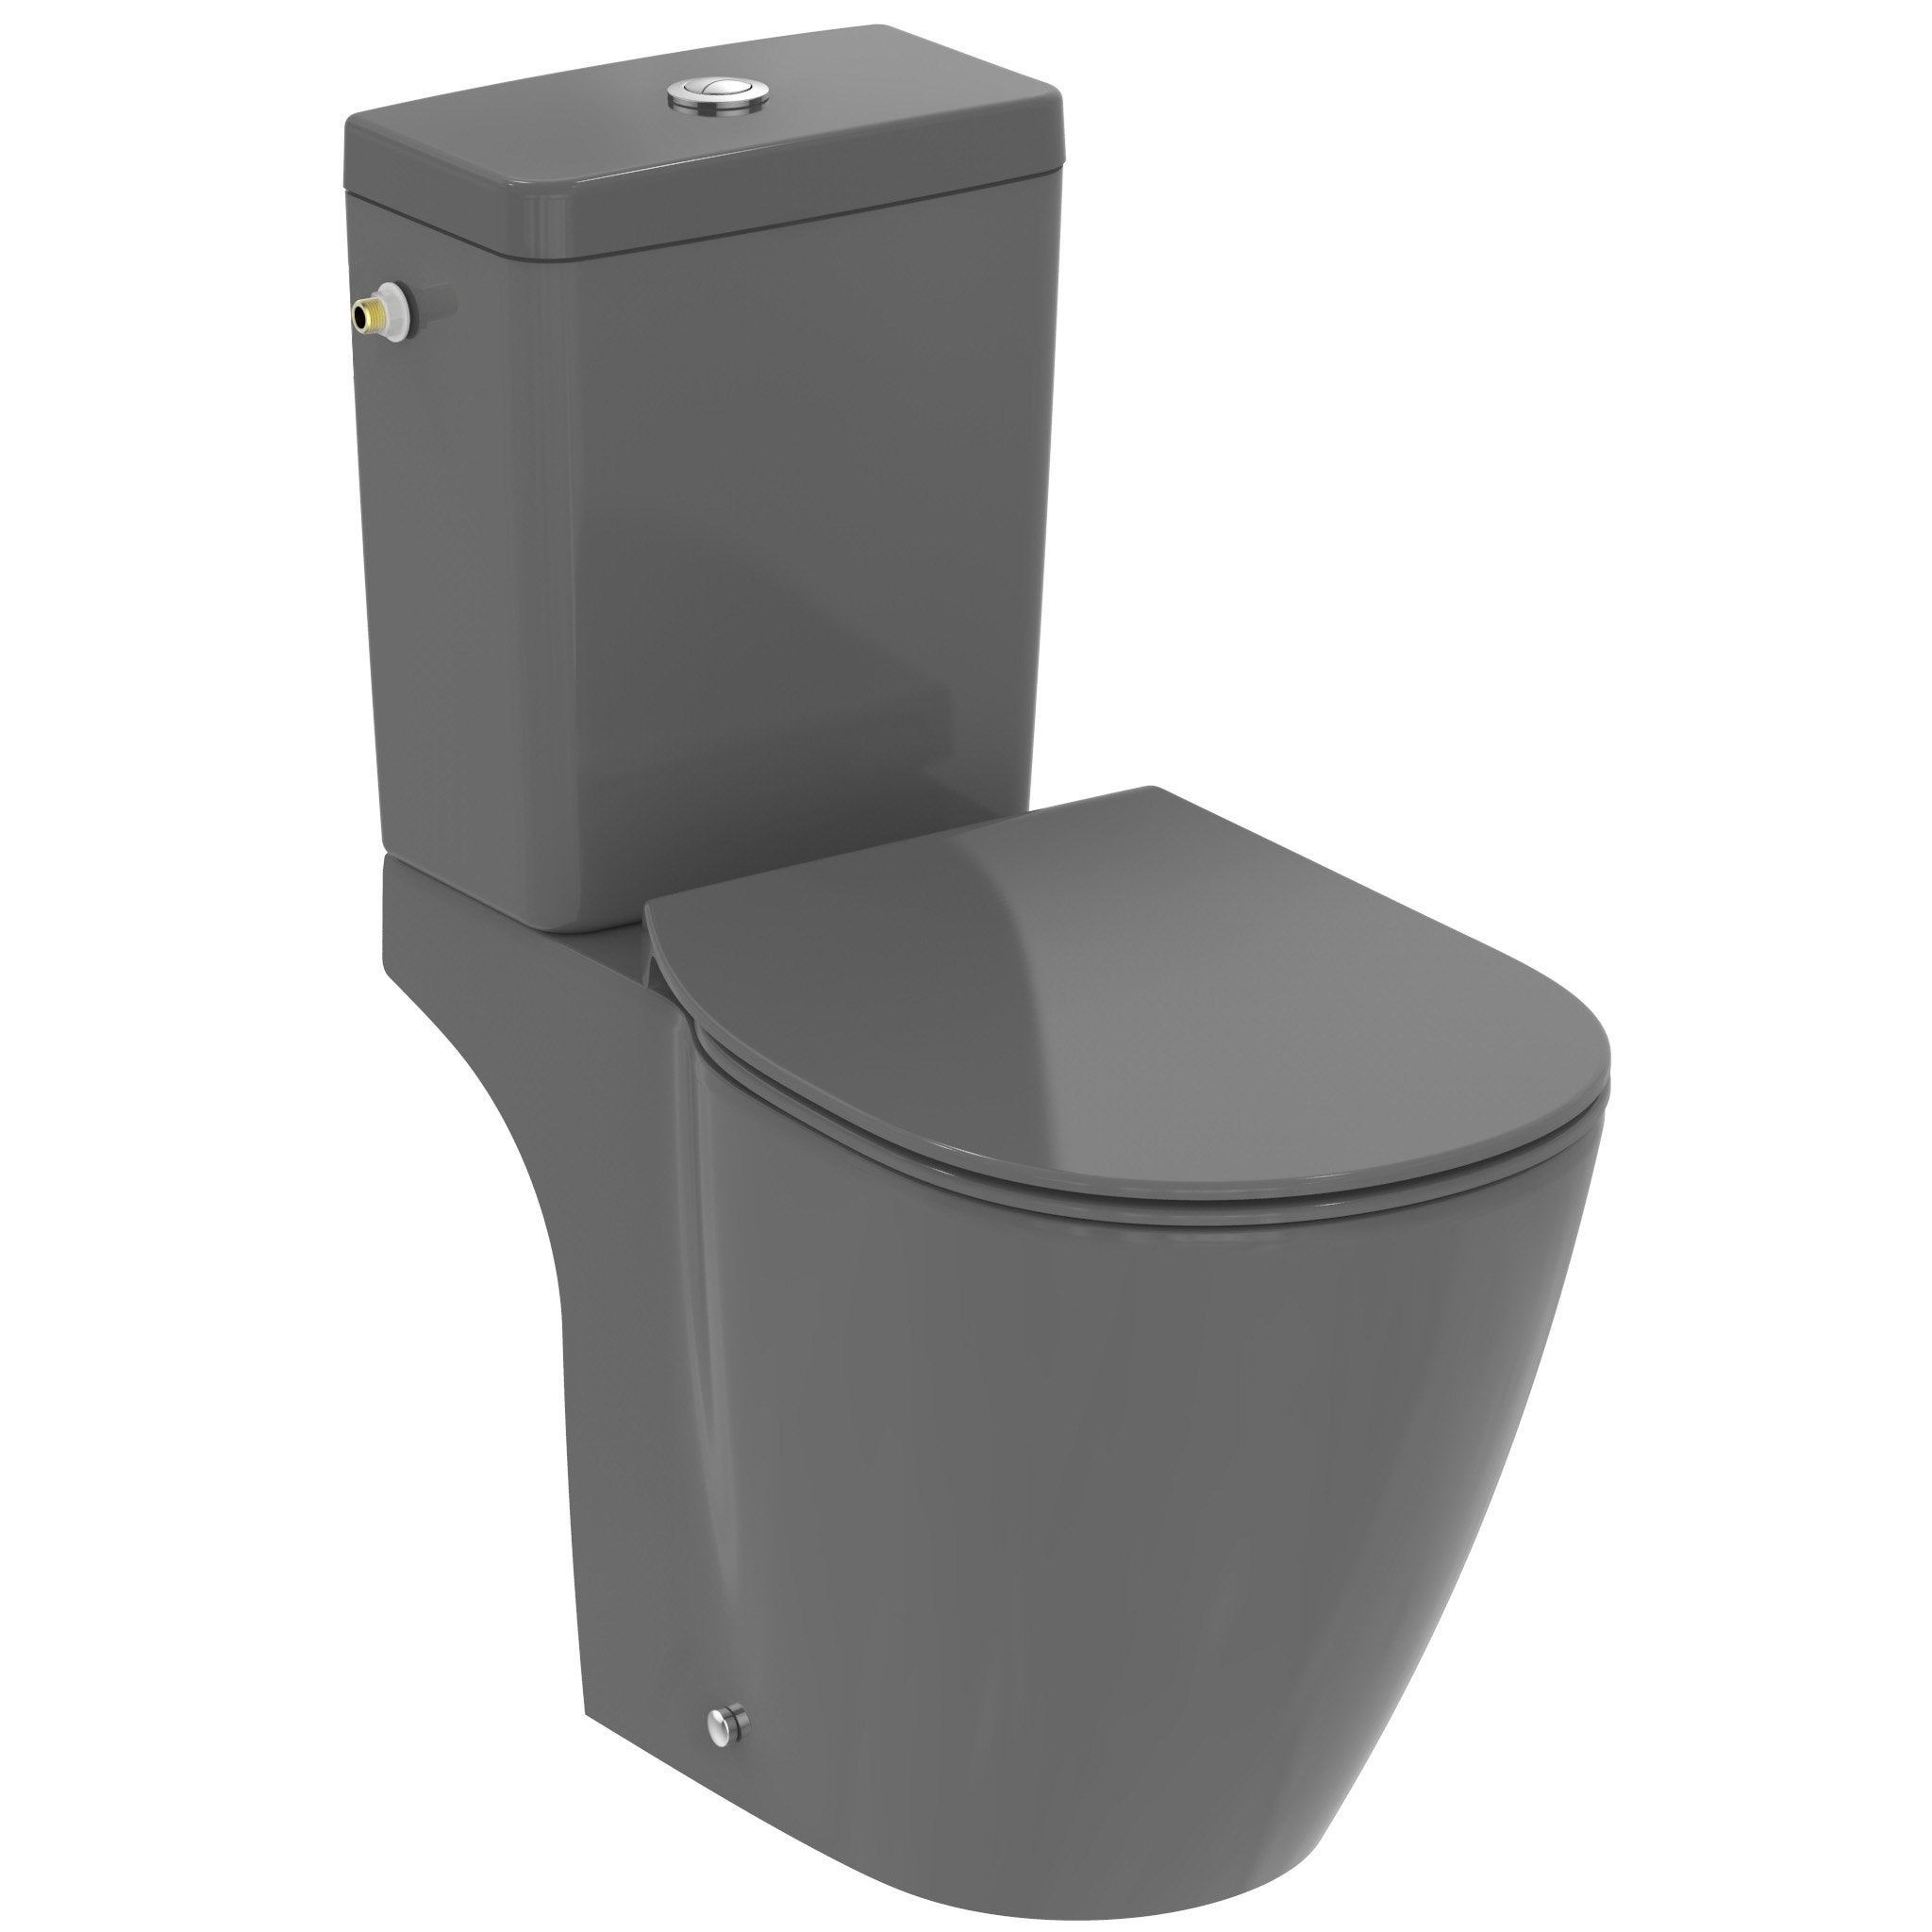 Pack Wc A Poser Sortie Horizontale Ideal Standard Aquablade Wc A Poser Pack Wc Wc Noir